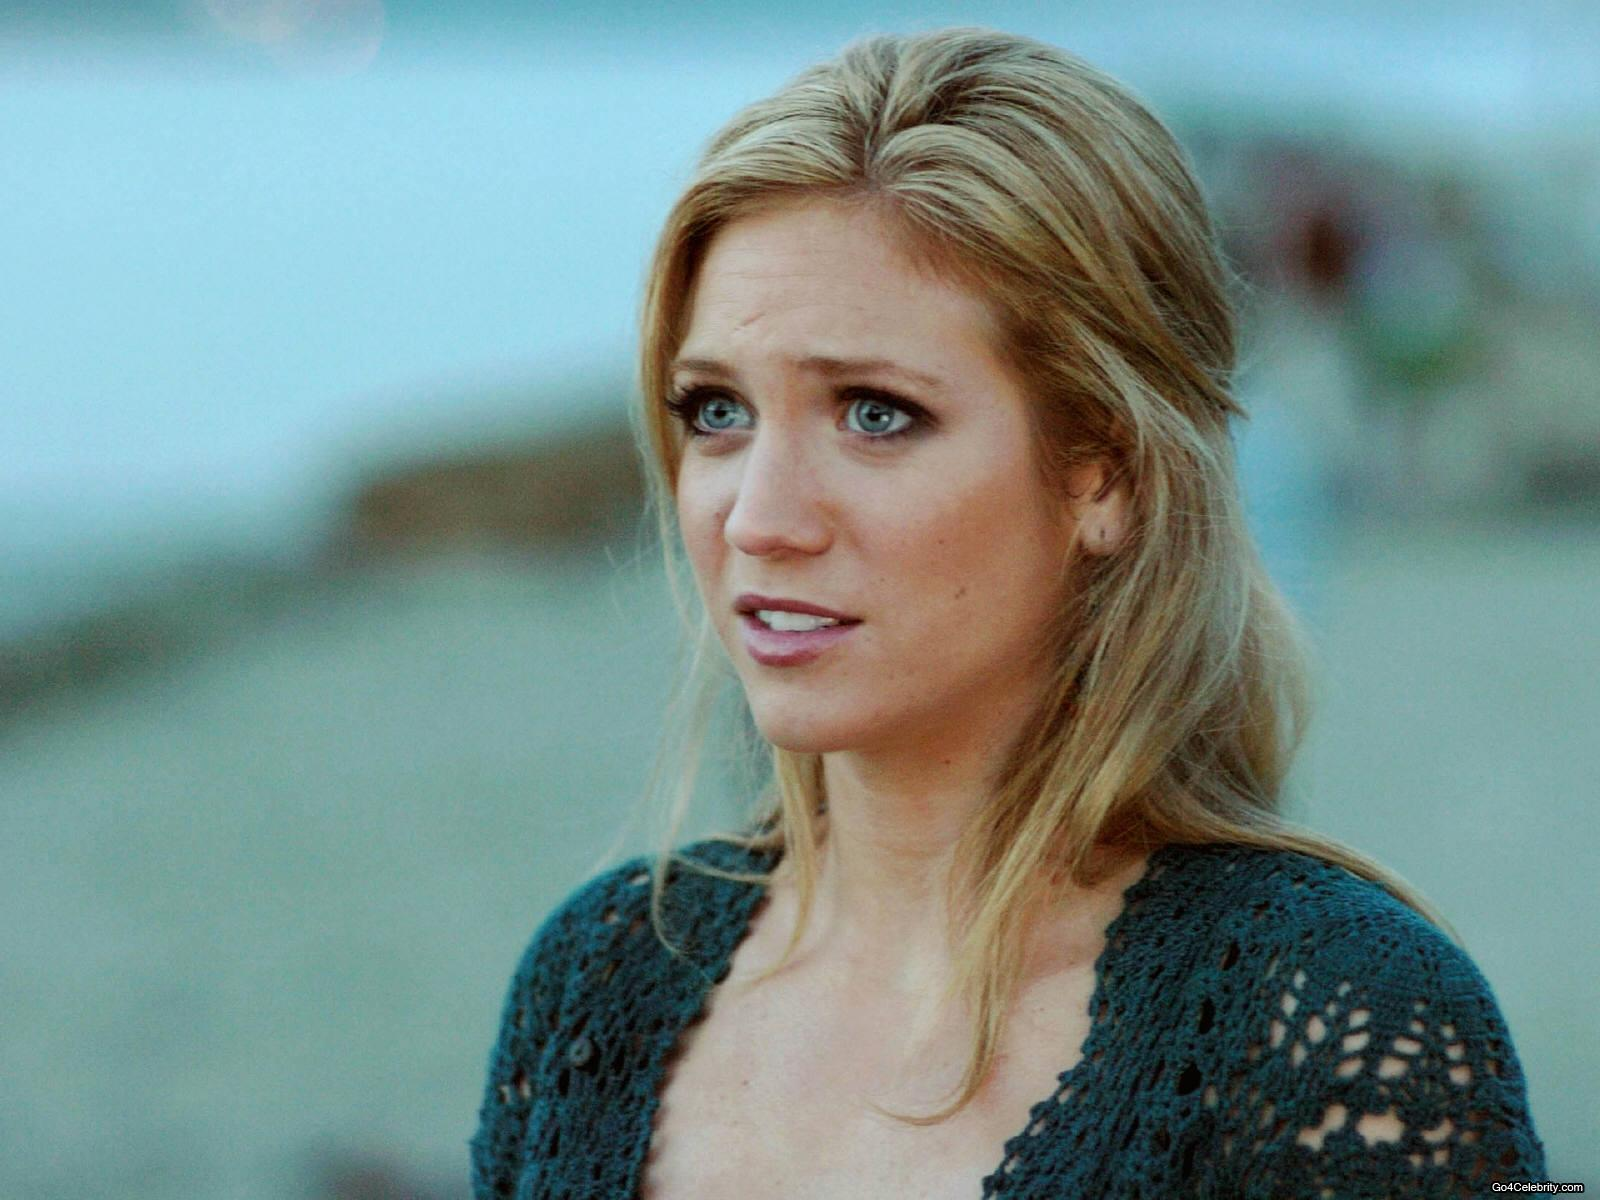 Onfolip: Brittany Snow Hd Wallpapers 2012 Ashlee Simpson Bio